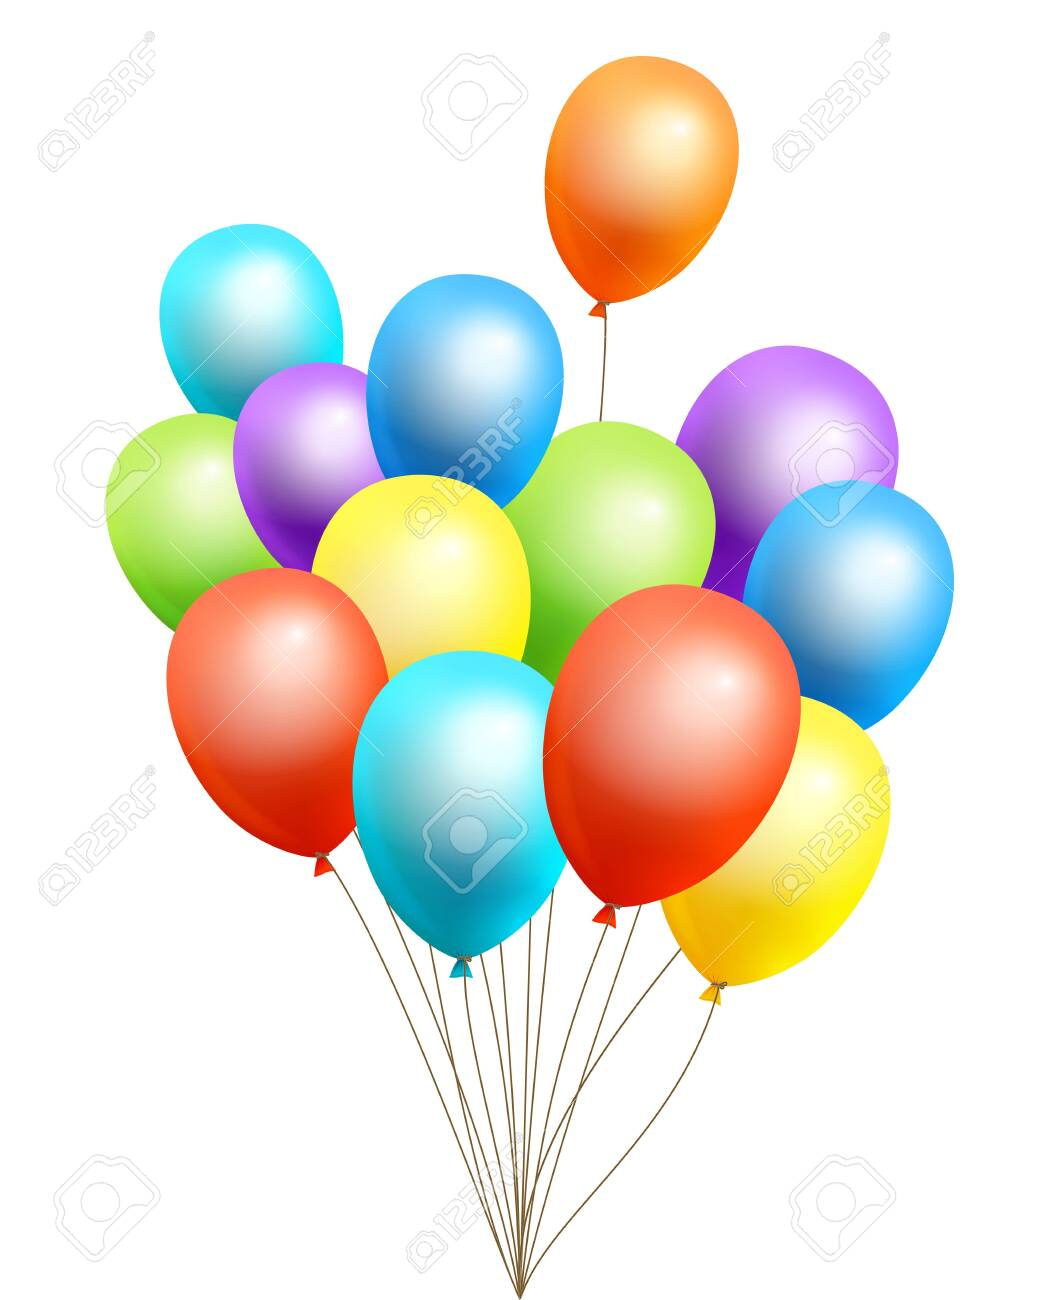 The bundle of flight up 3D rainbow color helium balloons on a white background. Realistic colorful design elements in red, orange, yellow, green, blue, purple. Vector Illustration. - 143677162